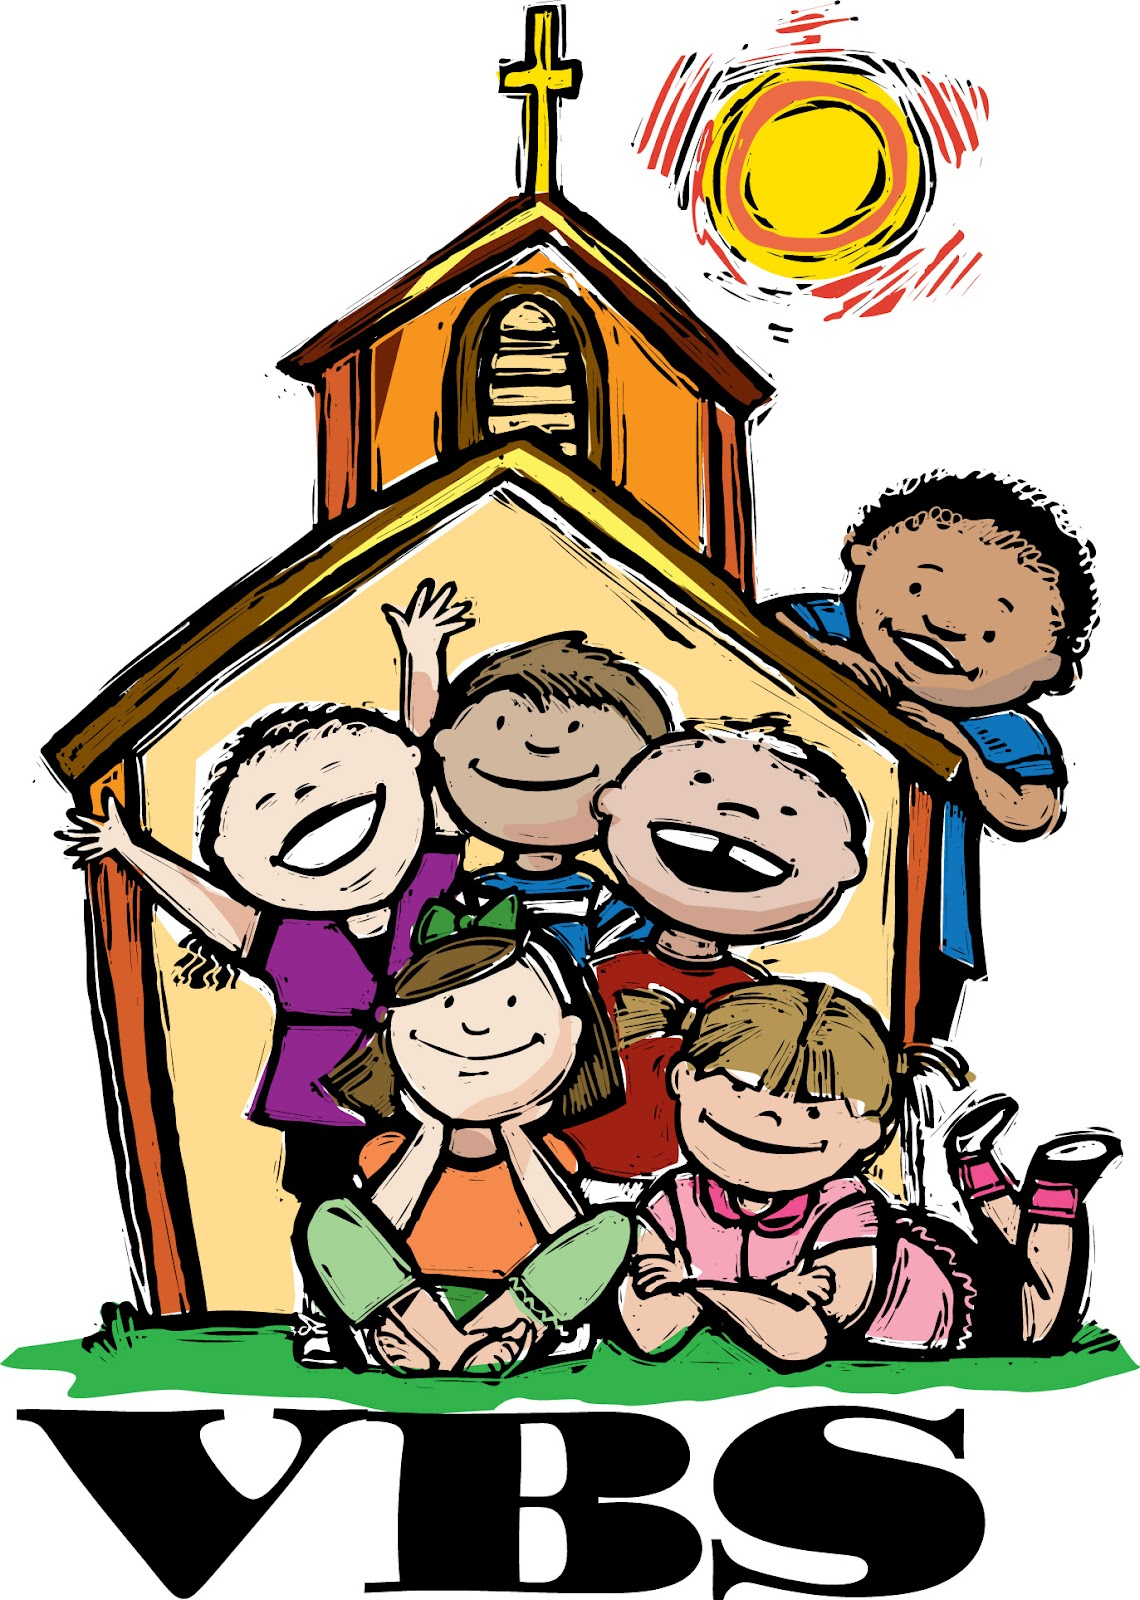 Vacation bible school free clipart png transparent Free Church Vacation Bible School Clip Art free image png transparent